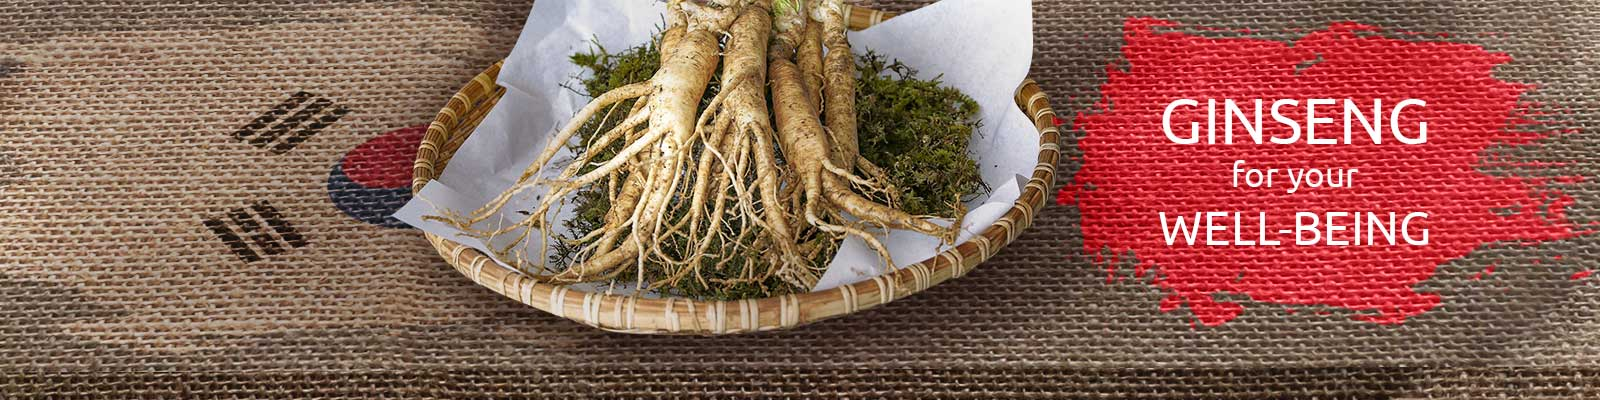 GINSENG FOR YOUR WELL-BEING